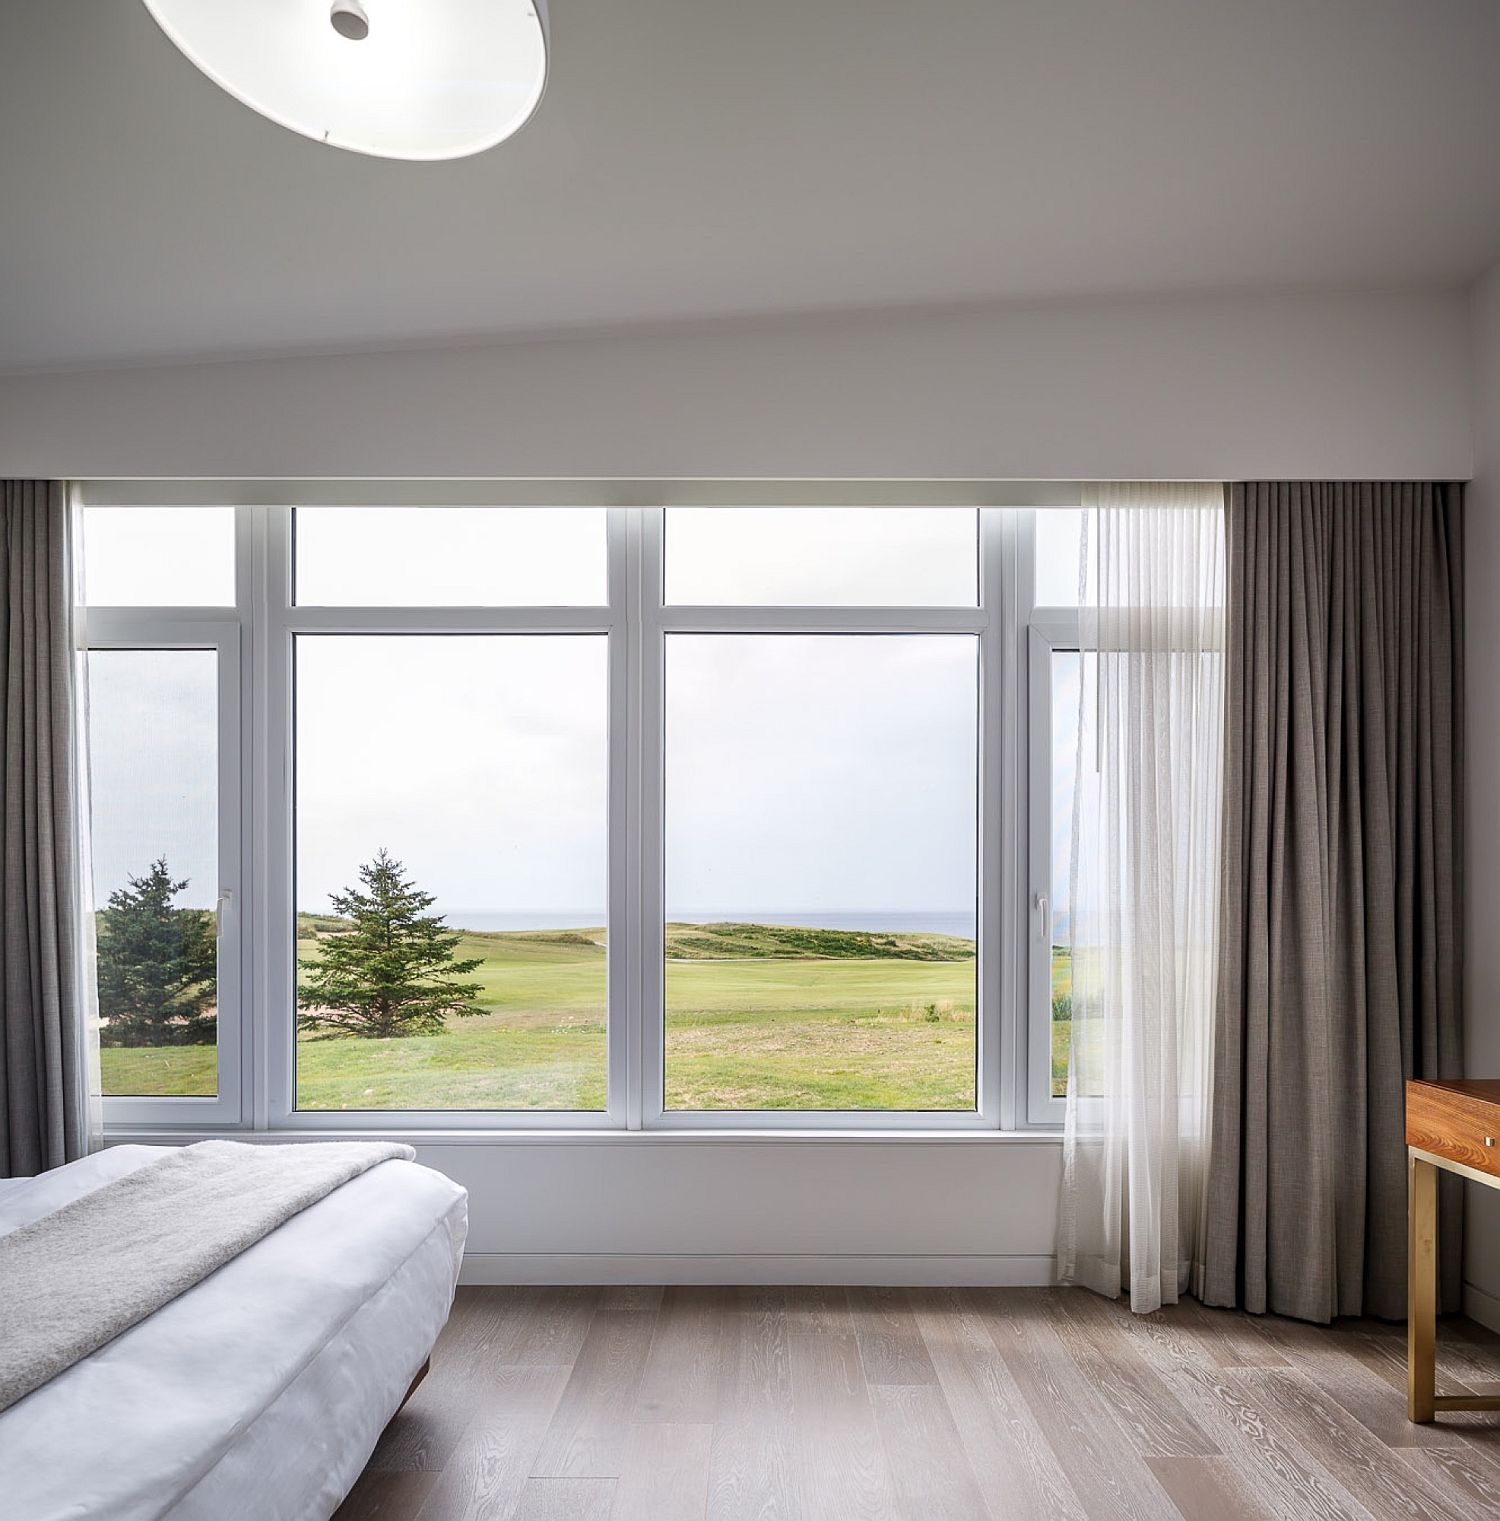 Ocean and golf course views are rolled into one at the Cabot Links